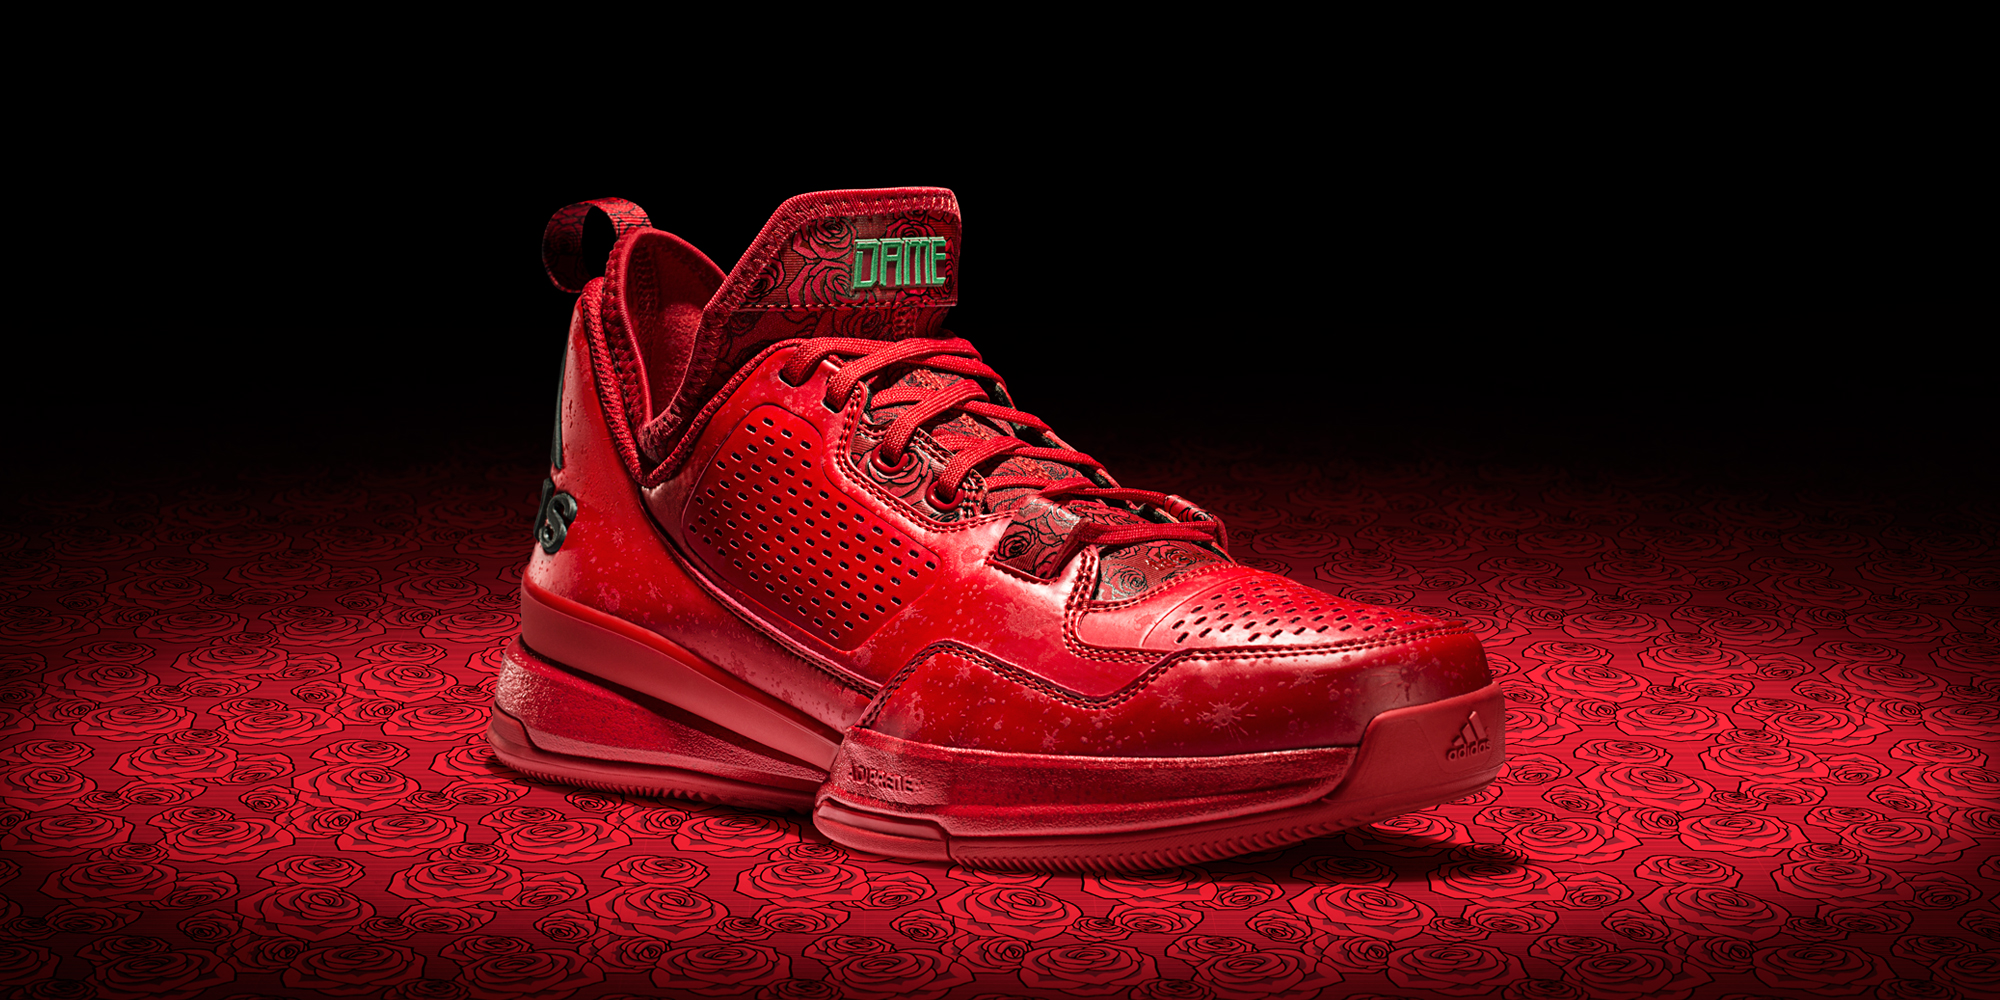 When Are The New Derrick Rose Shoes Coming Out